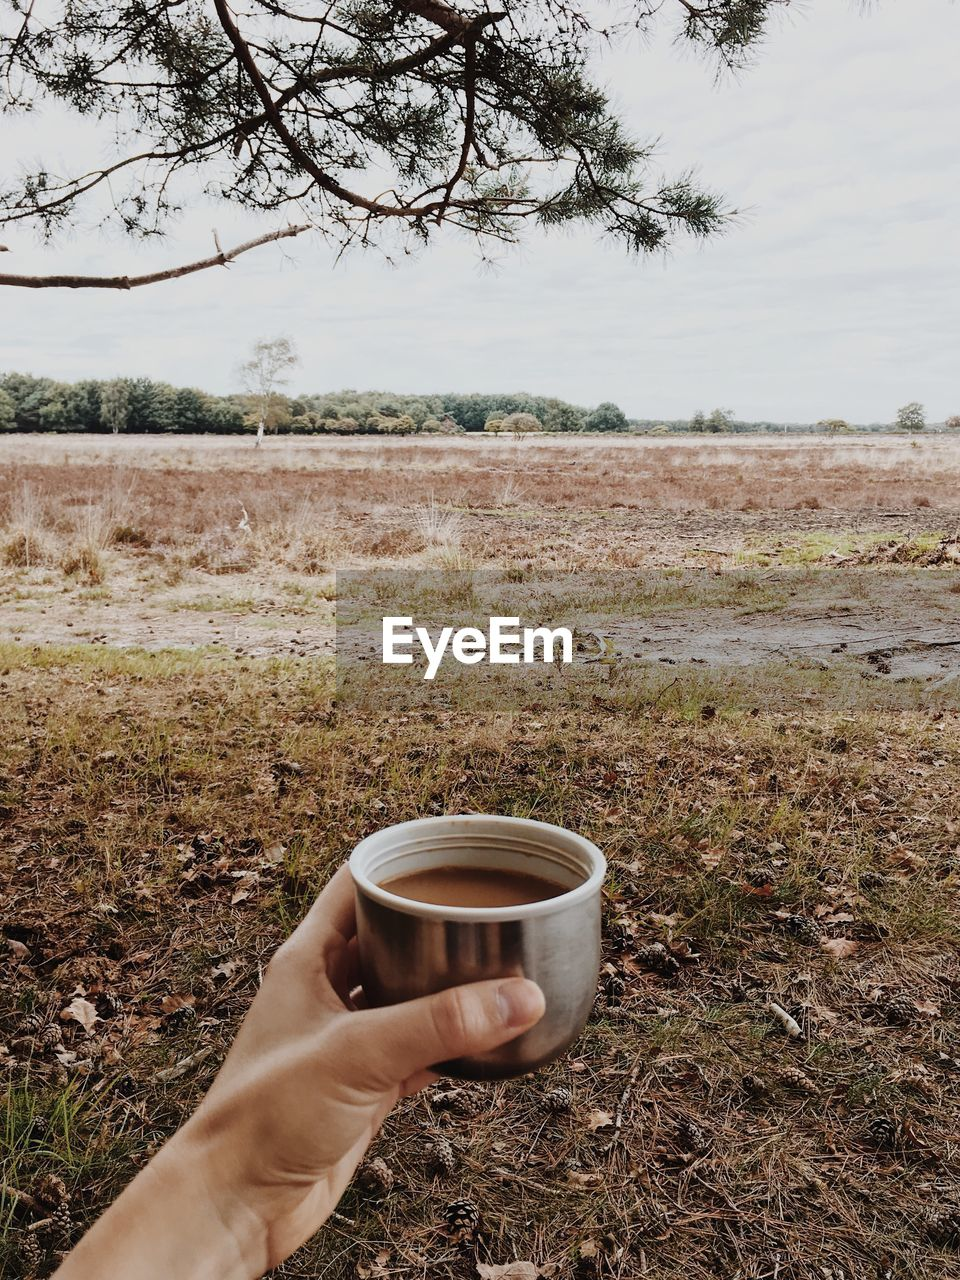 Cropped hand of person holding coffee cup on land